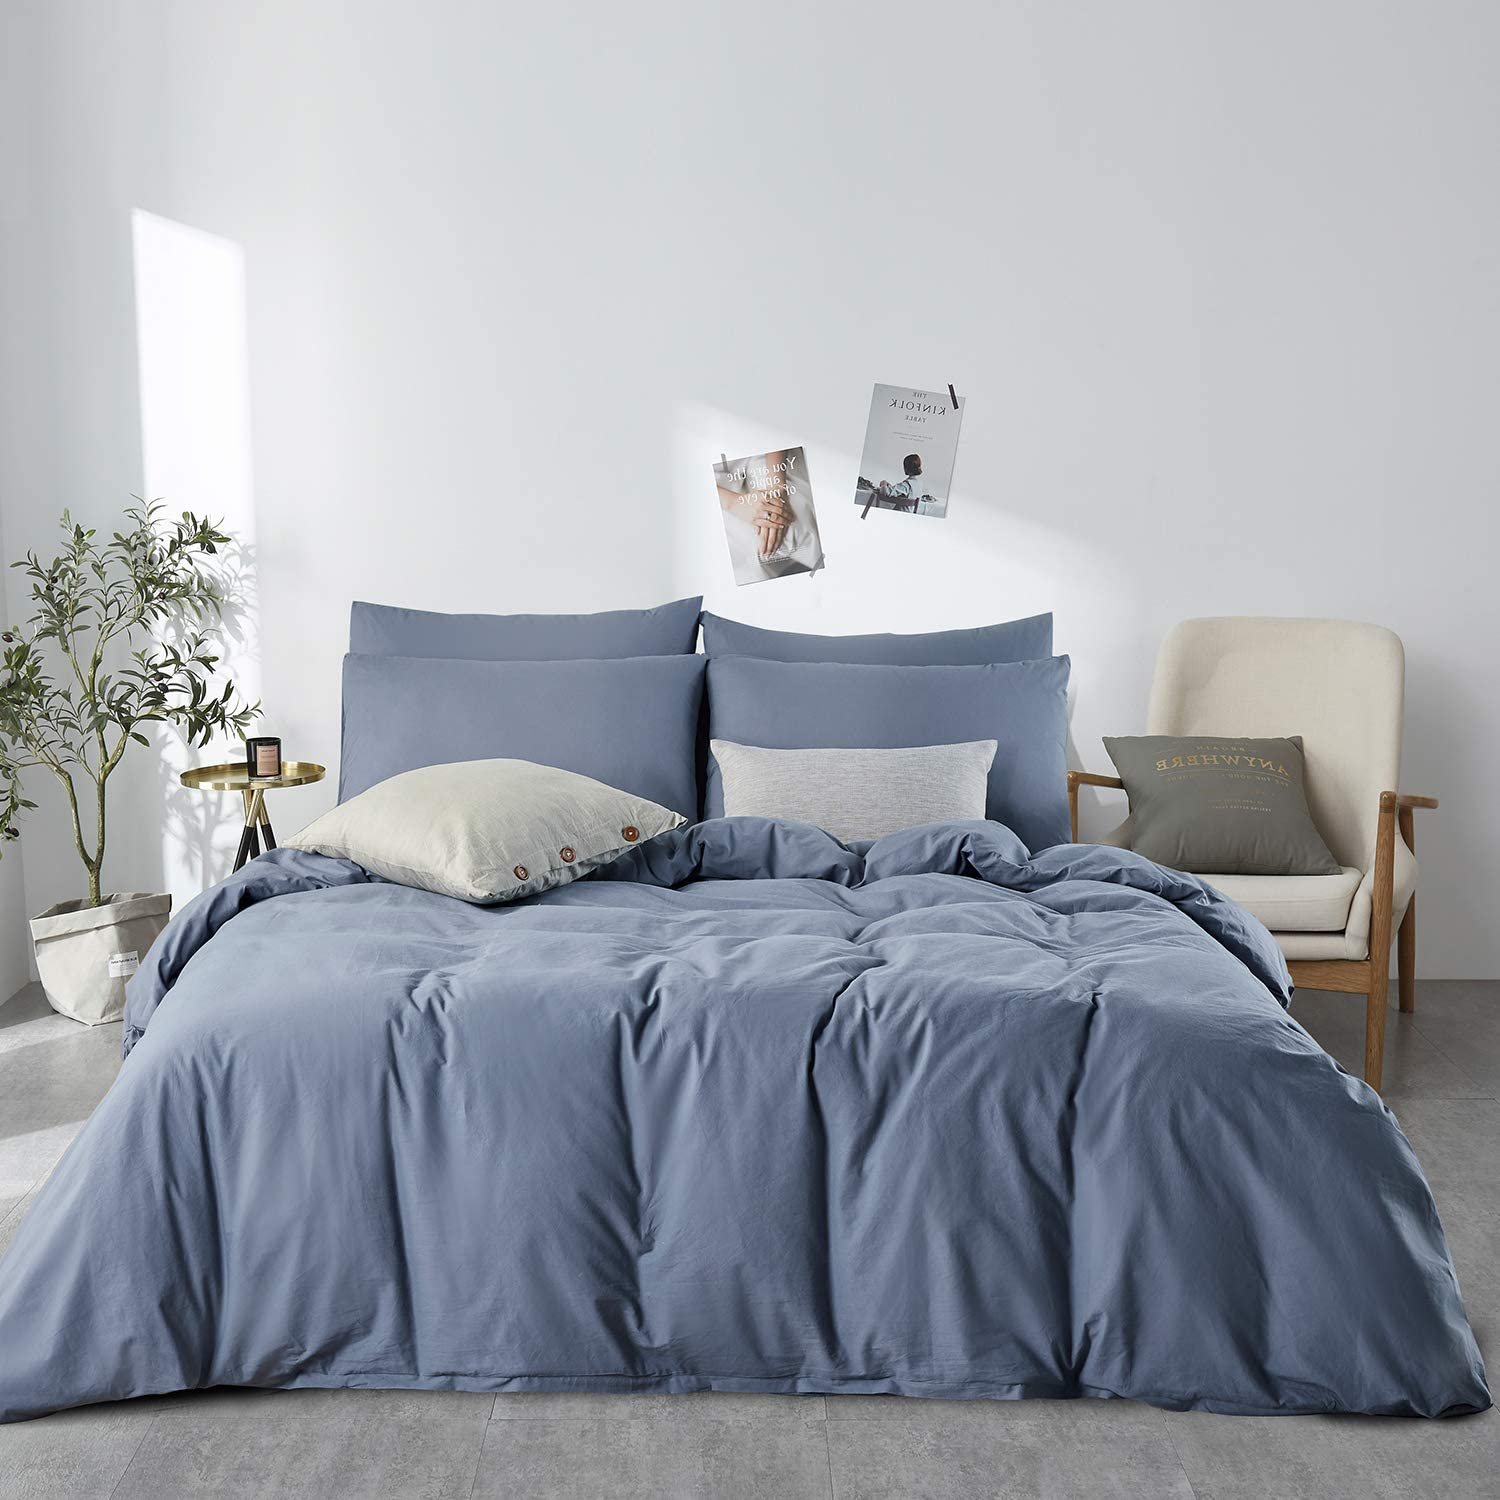 Amazon Com Jellymoni Blue 100 Washed Cotton Duvet Cover Set 3 Pieces Ultra Soft Bedding Set With Zipper Closure Solid Color Pattern Duvet Cover King Size No Comforter Home Kitchen